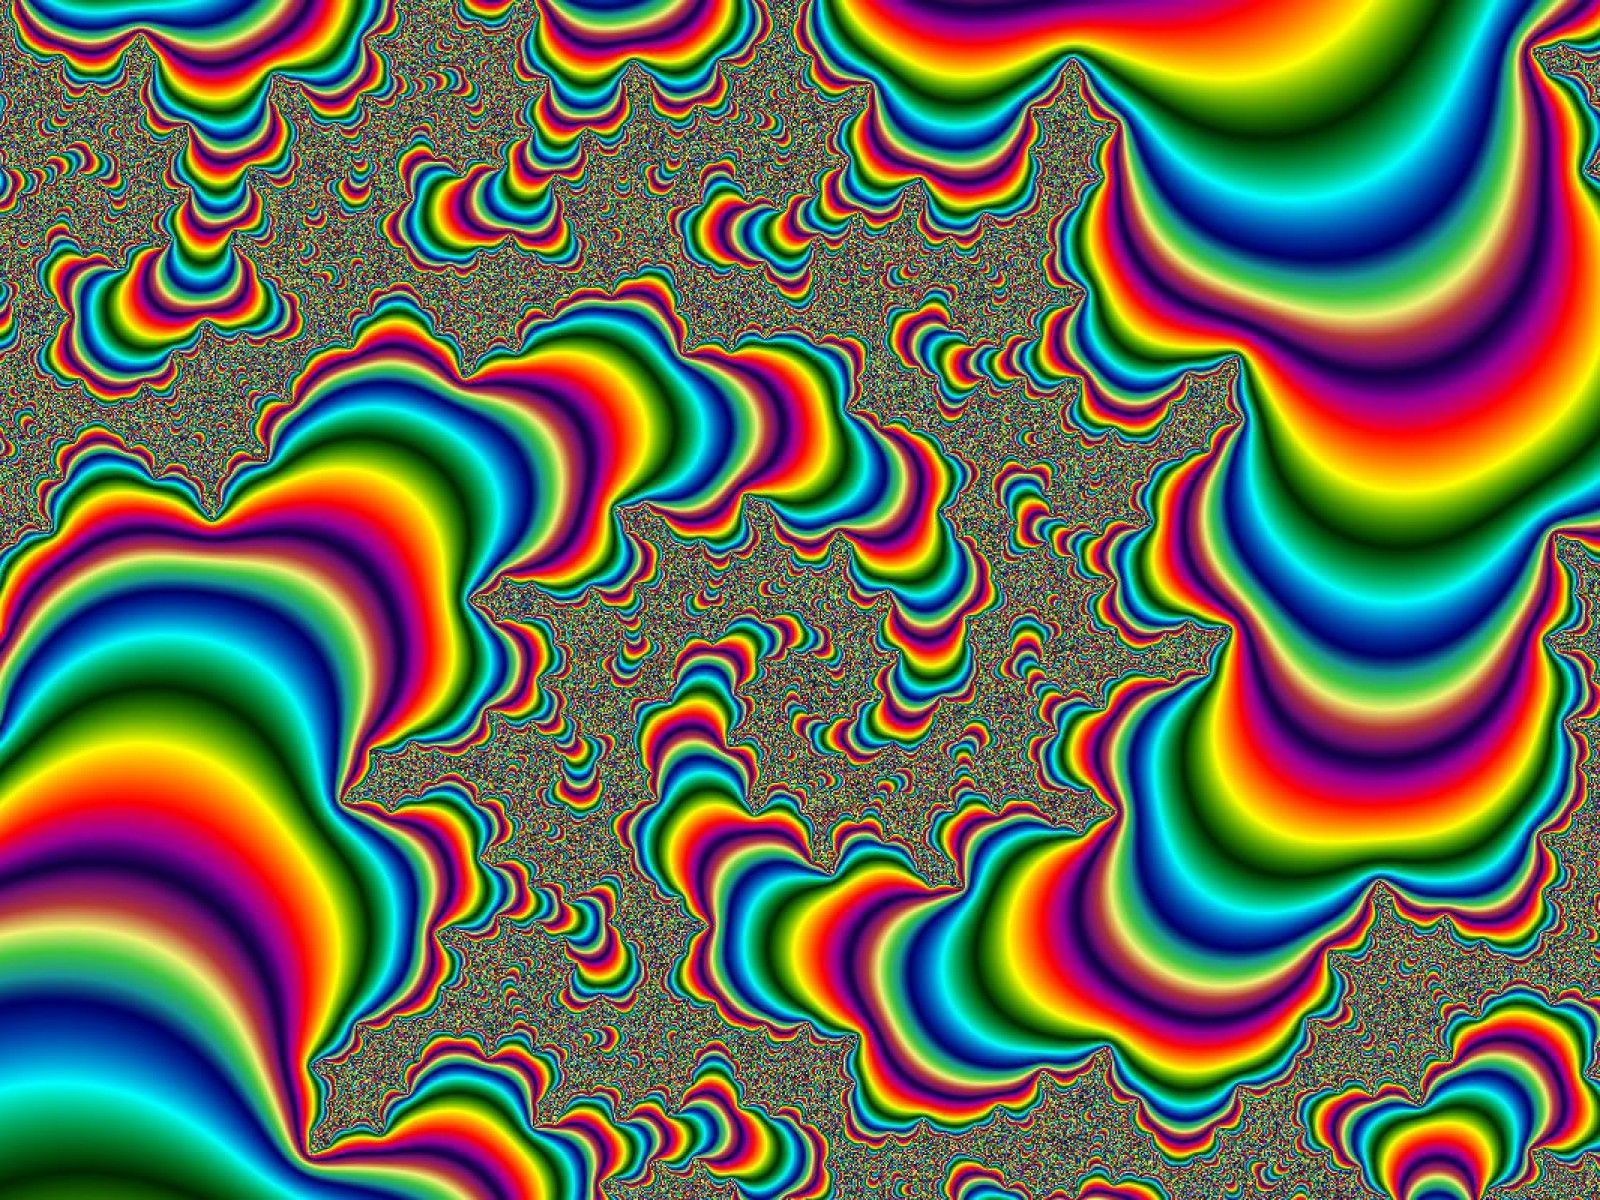 Moving Illusion Backgrounds wallpapers 2020 Trippy